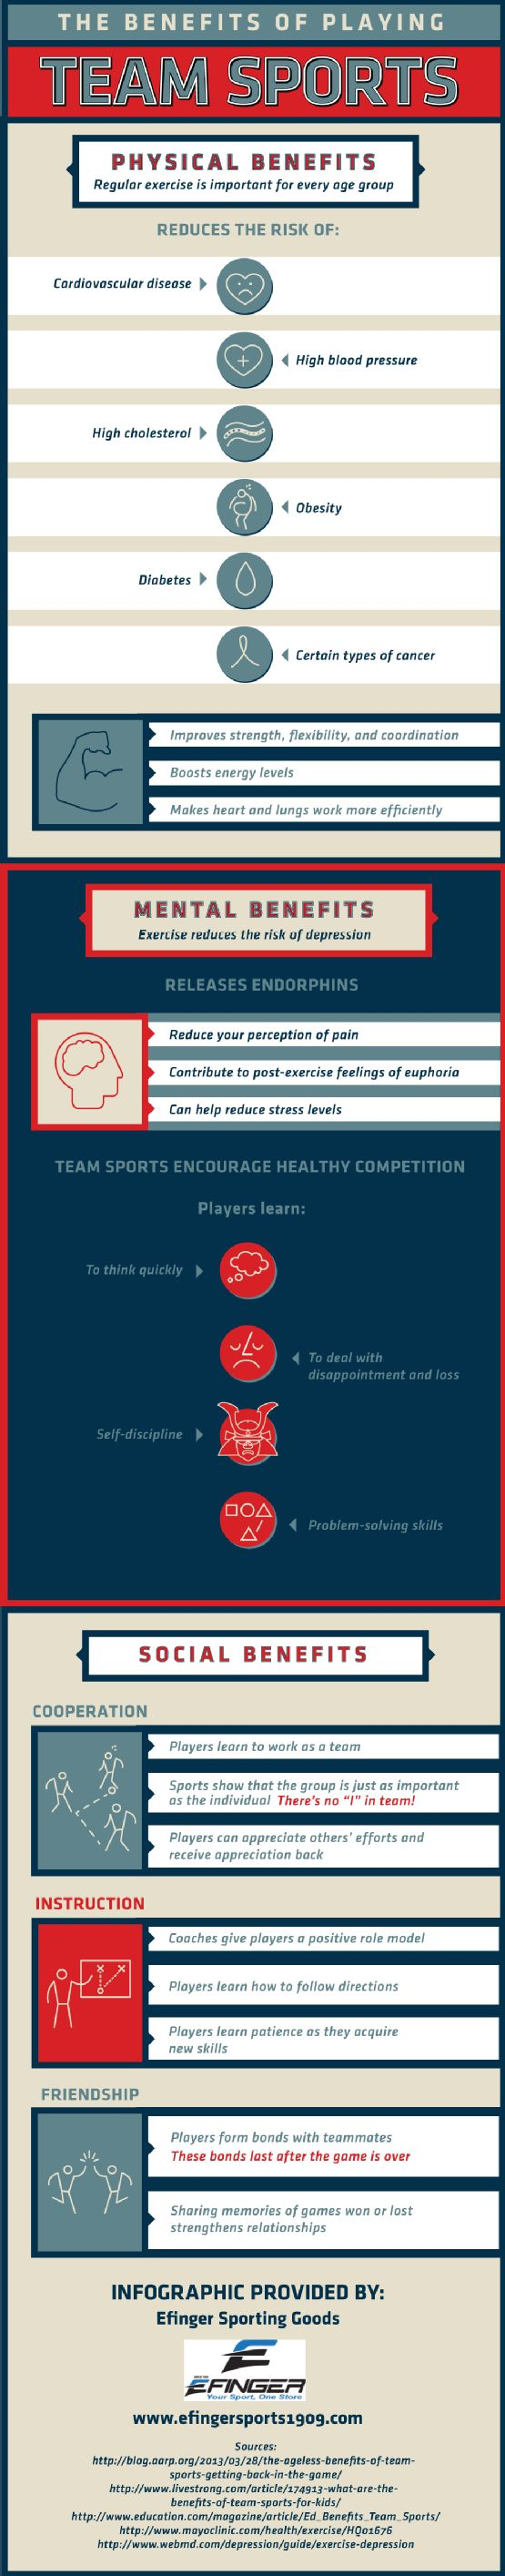 sport as solvation to reduce stress Sports psychology campus degrees careers  student guide to surviving stress and anxiety in college  mindfulness has been proven to reduce stress and anxiety .